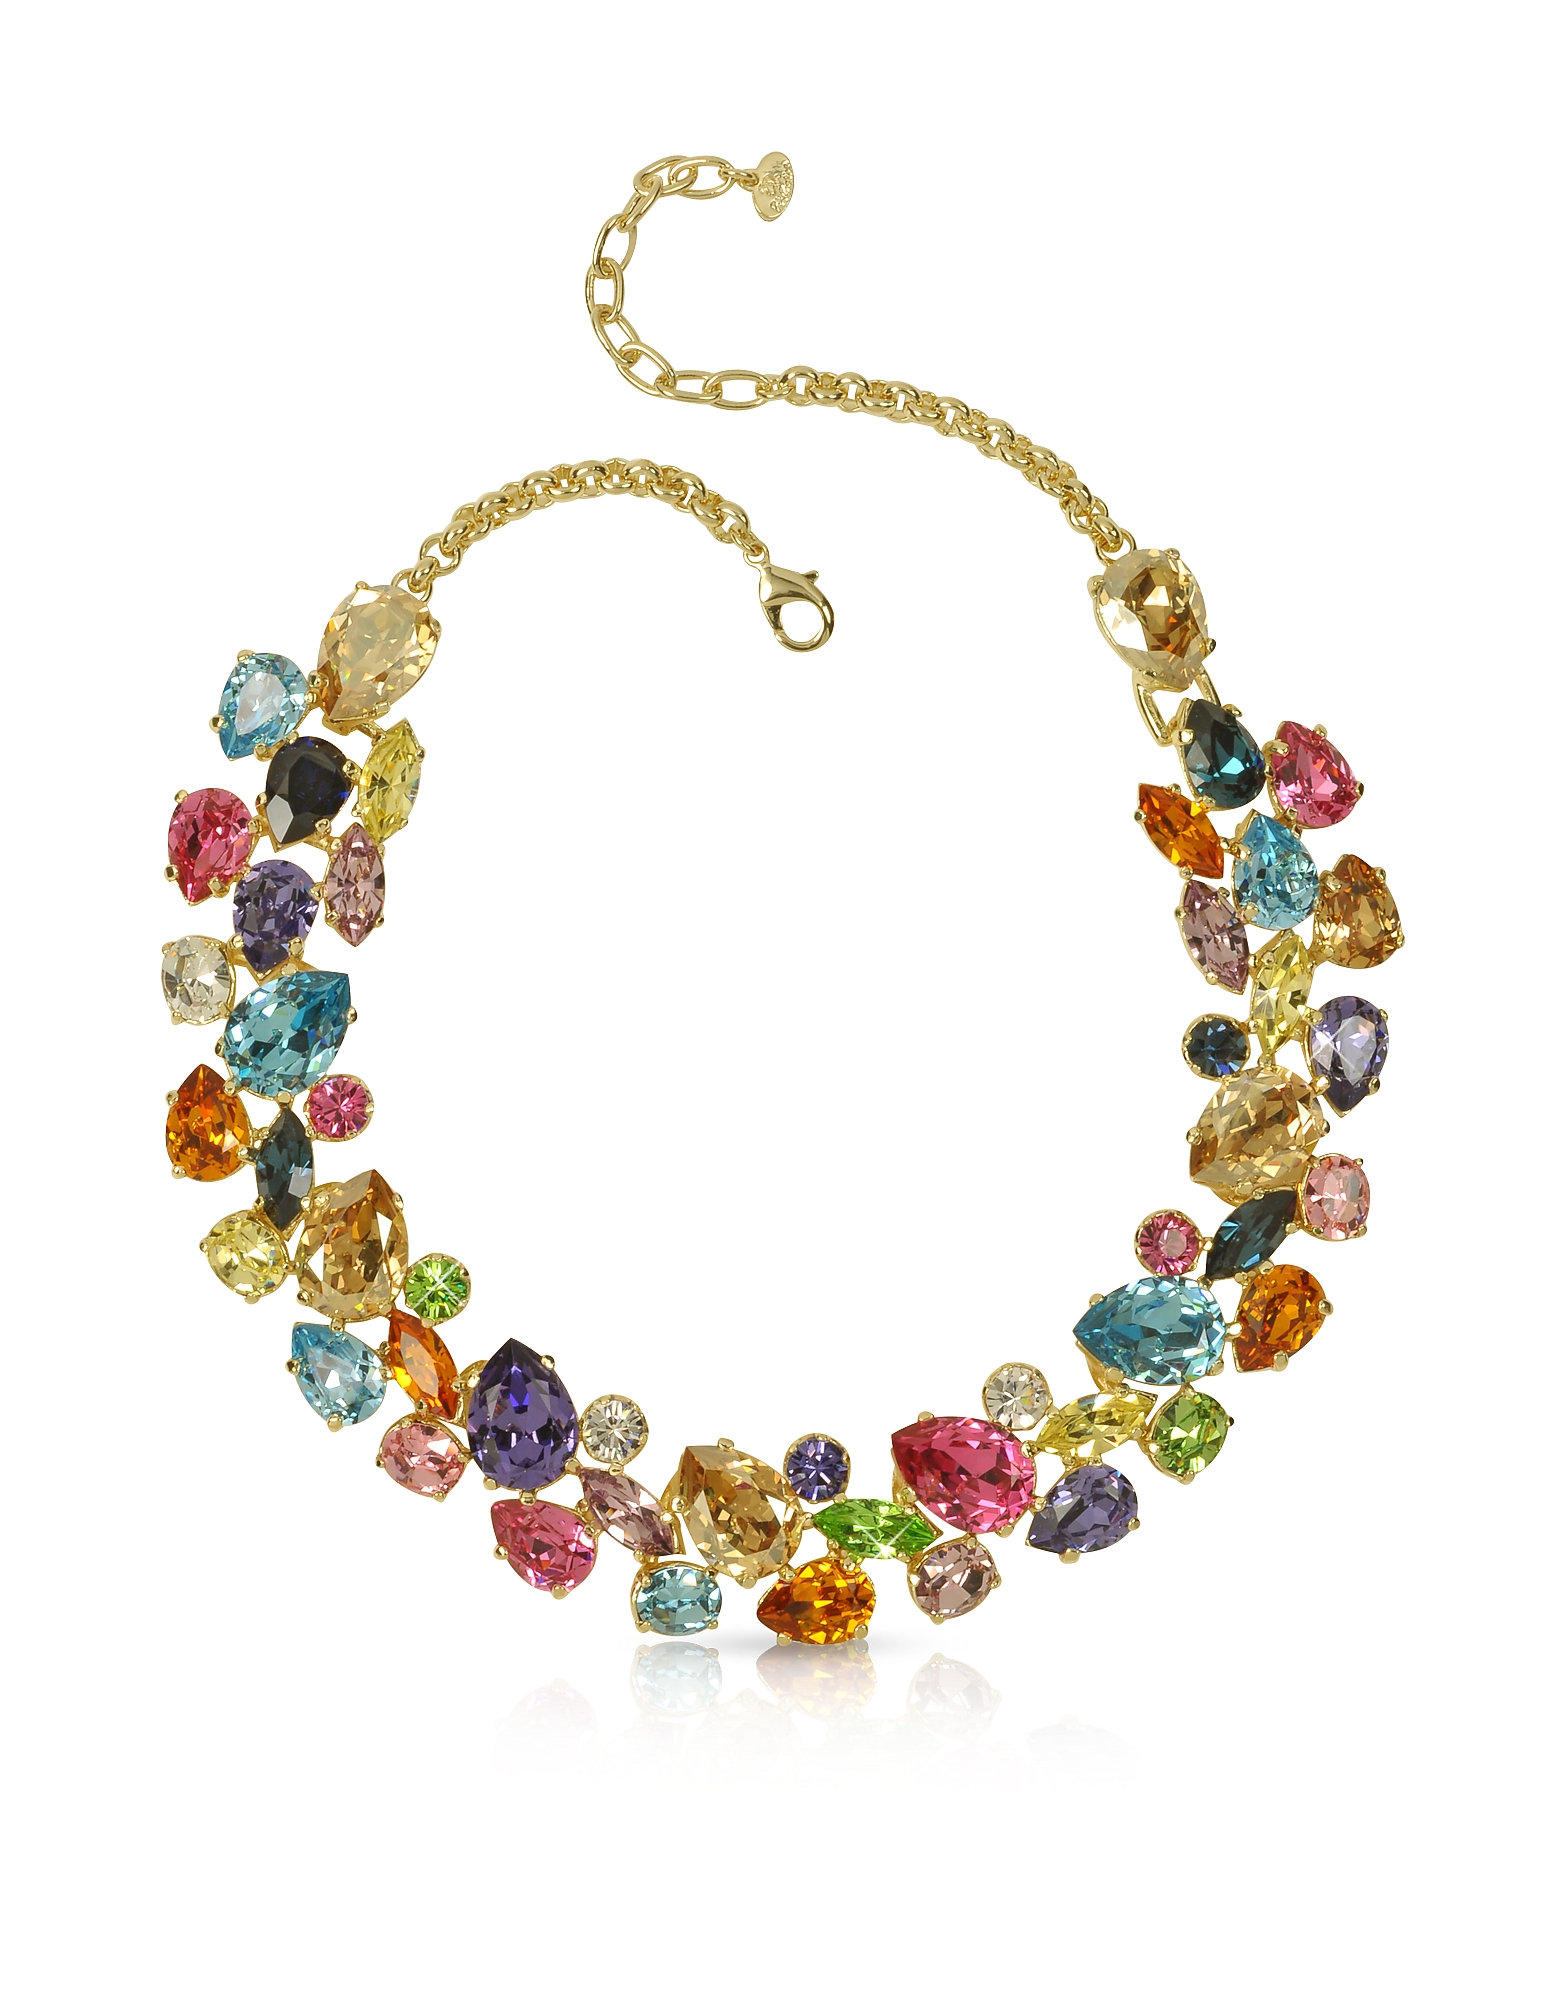 Forzieri Necklaces, Multicolor Crystal and Metal Necklace